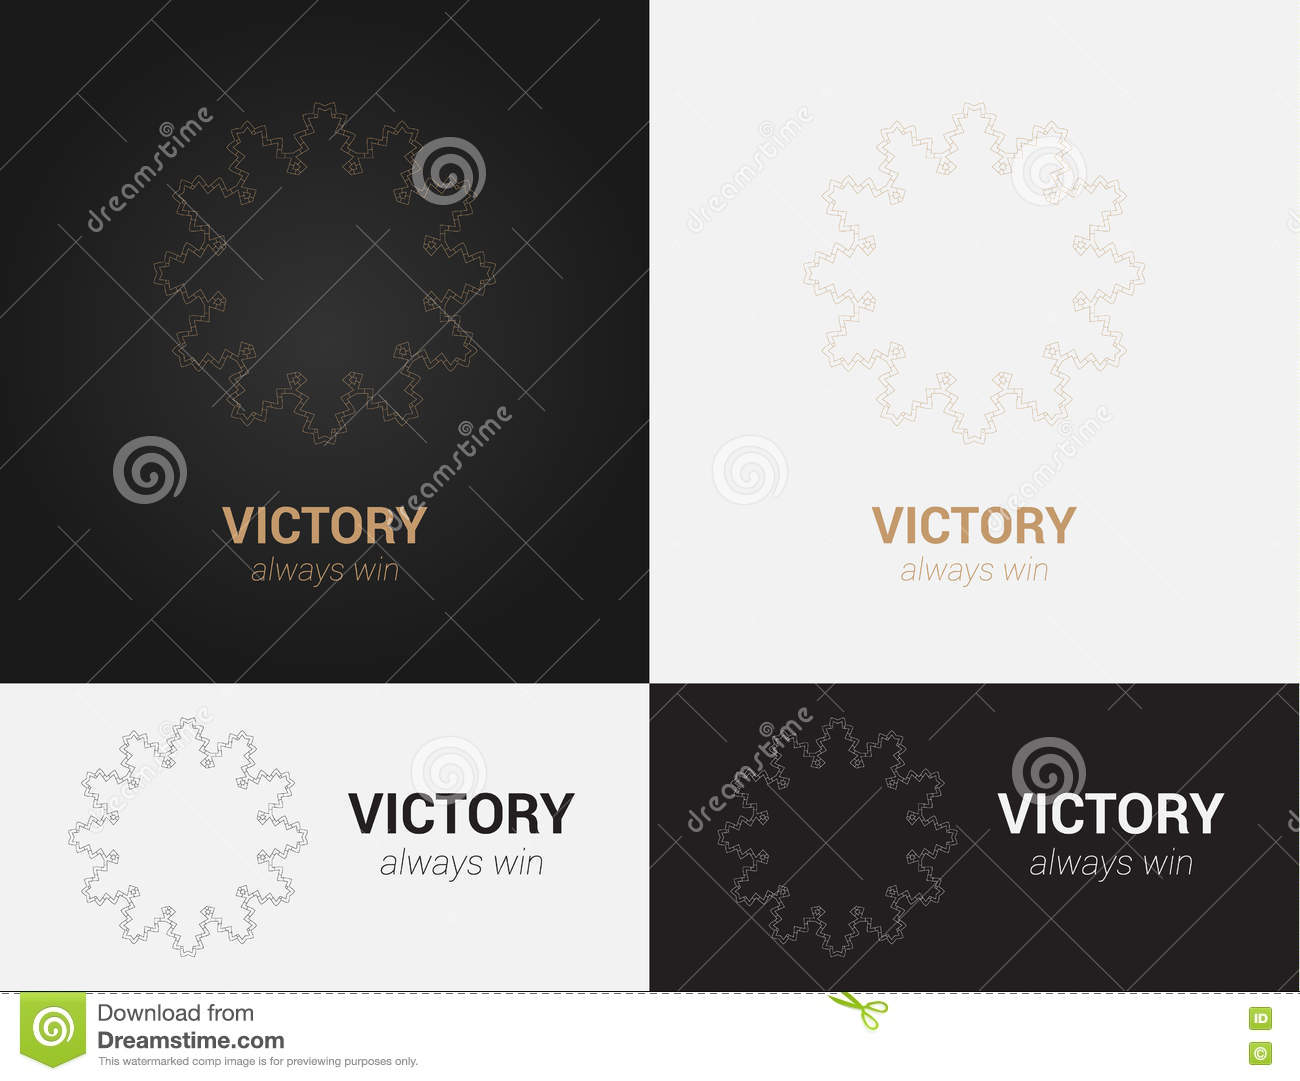 Design templates in black grey and golden colors creative mandala vector design templates in black grey and golden colors creative mandala logo icon emblem symbol for business invitation wedding banner flyer or stopboris Image collections